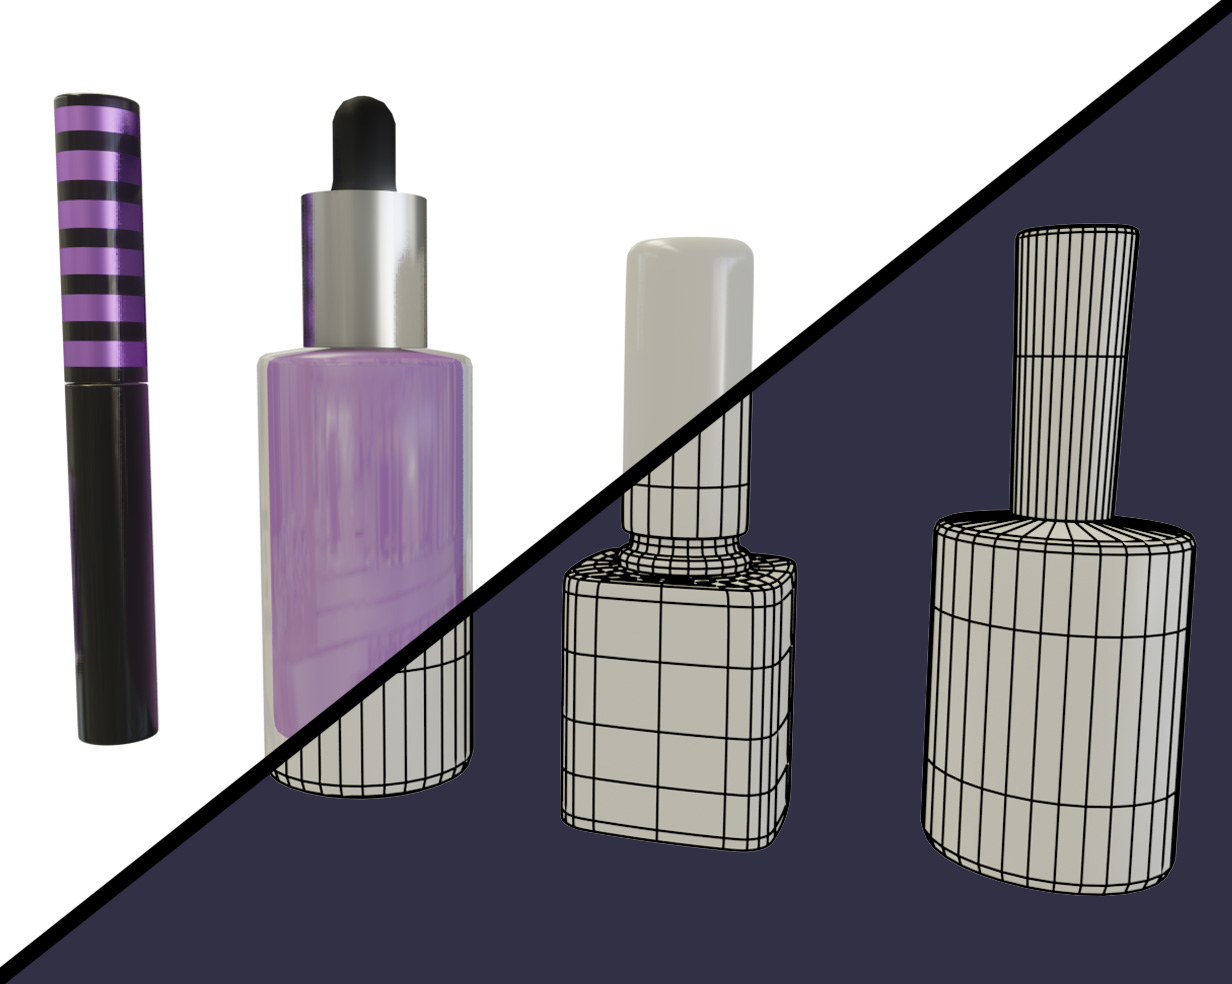 3d animated makeup bottles split down the screen showing textured version and wireframe version